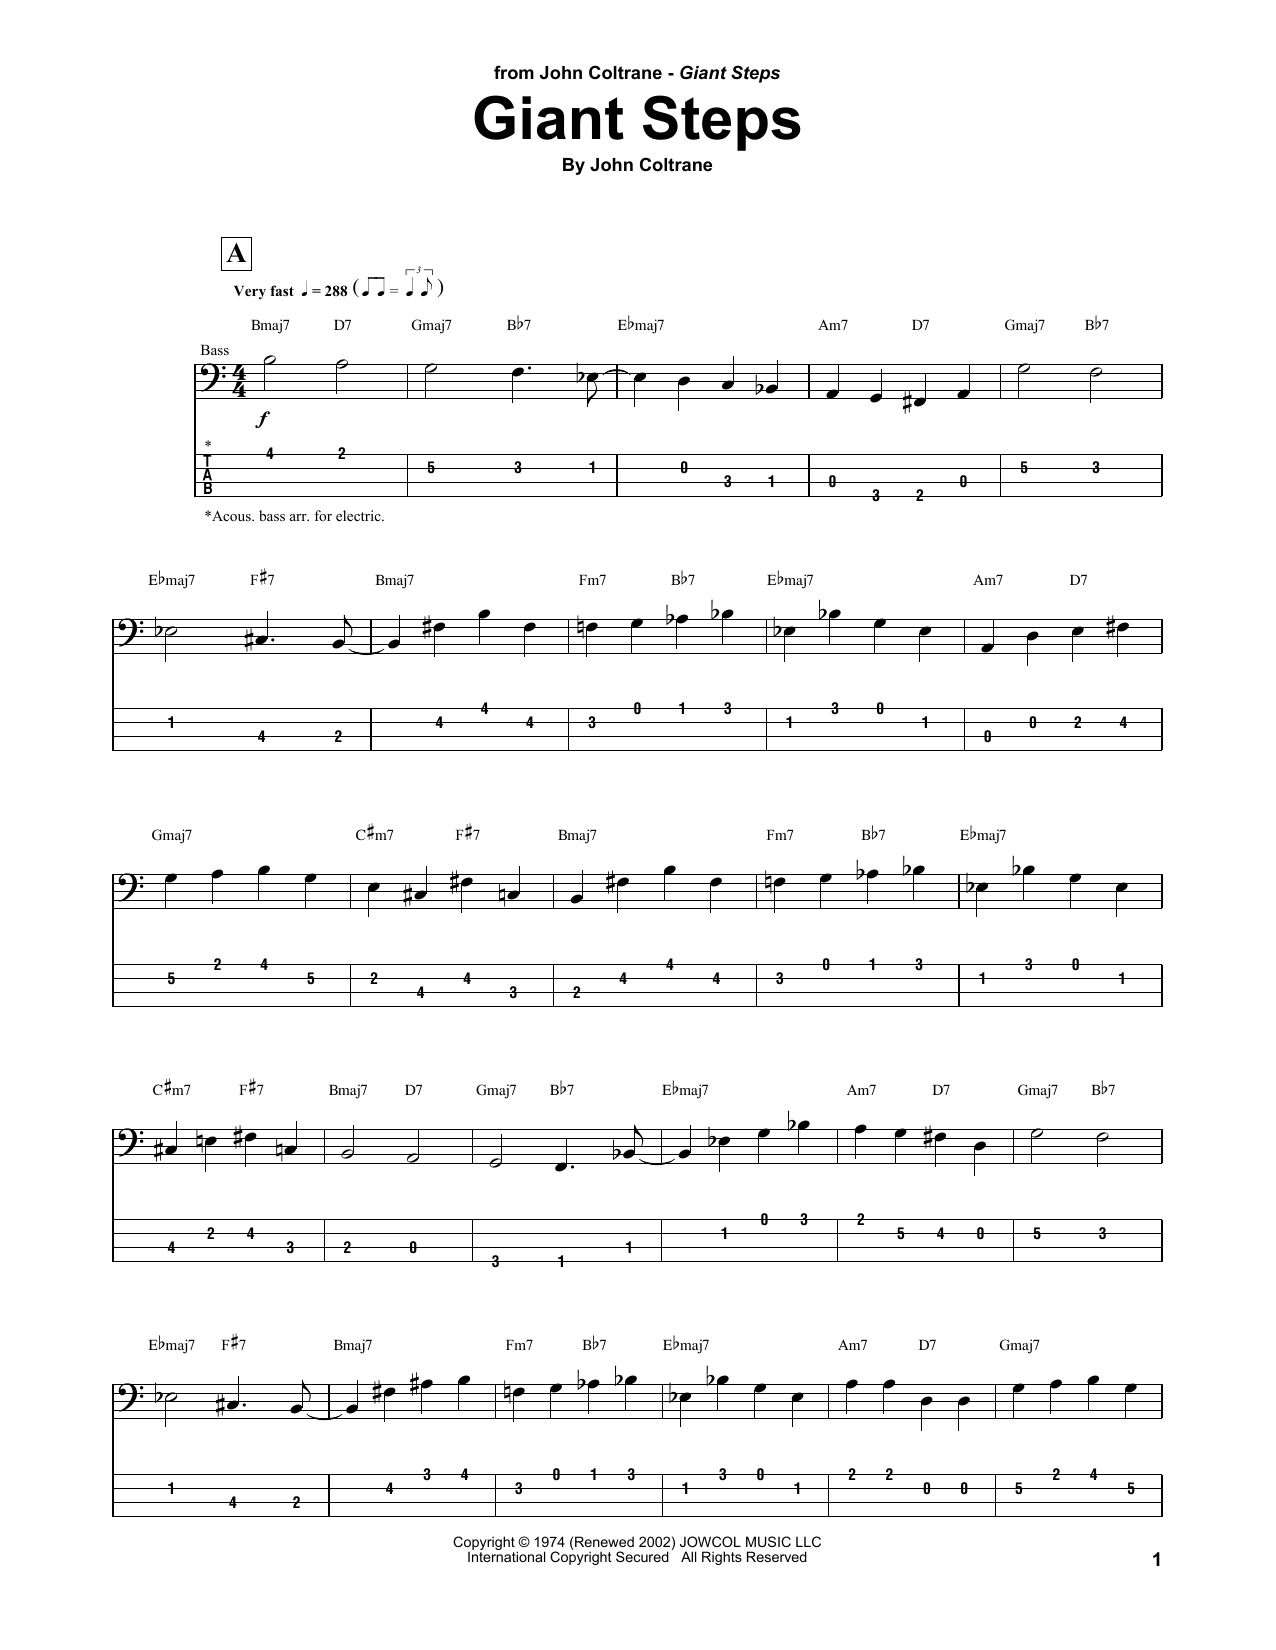 John Coltrane Giant Steps sheet music notes and chords. Download Printable PDF.